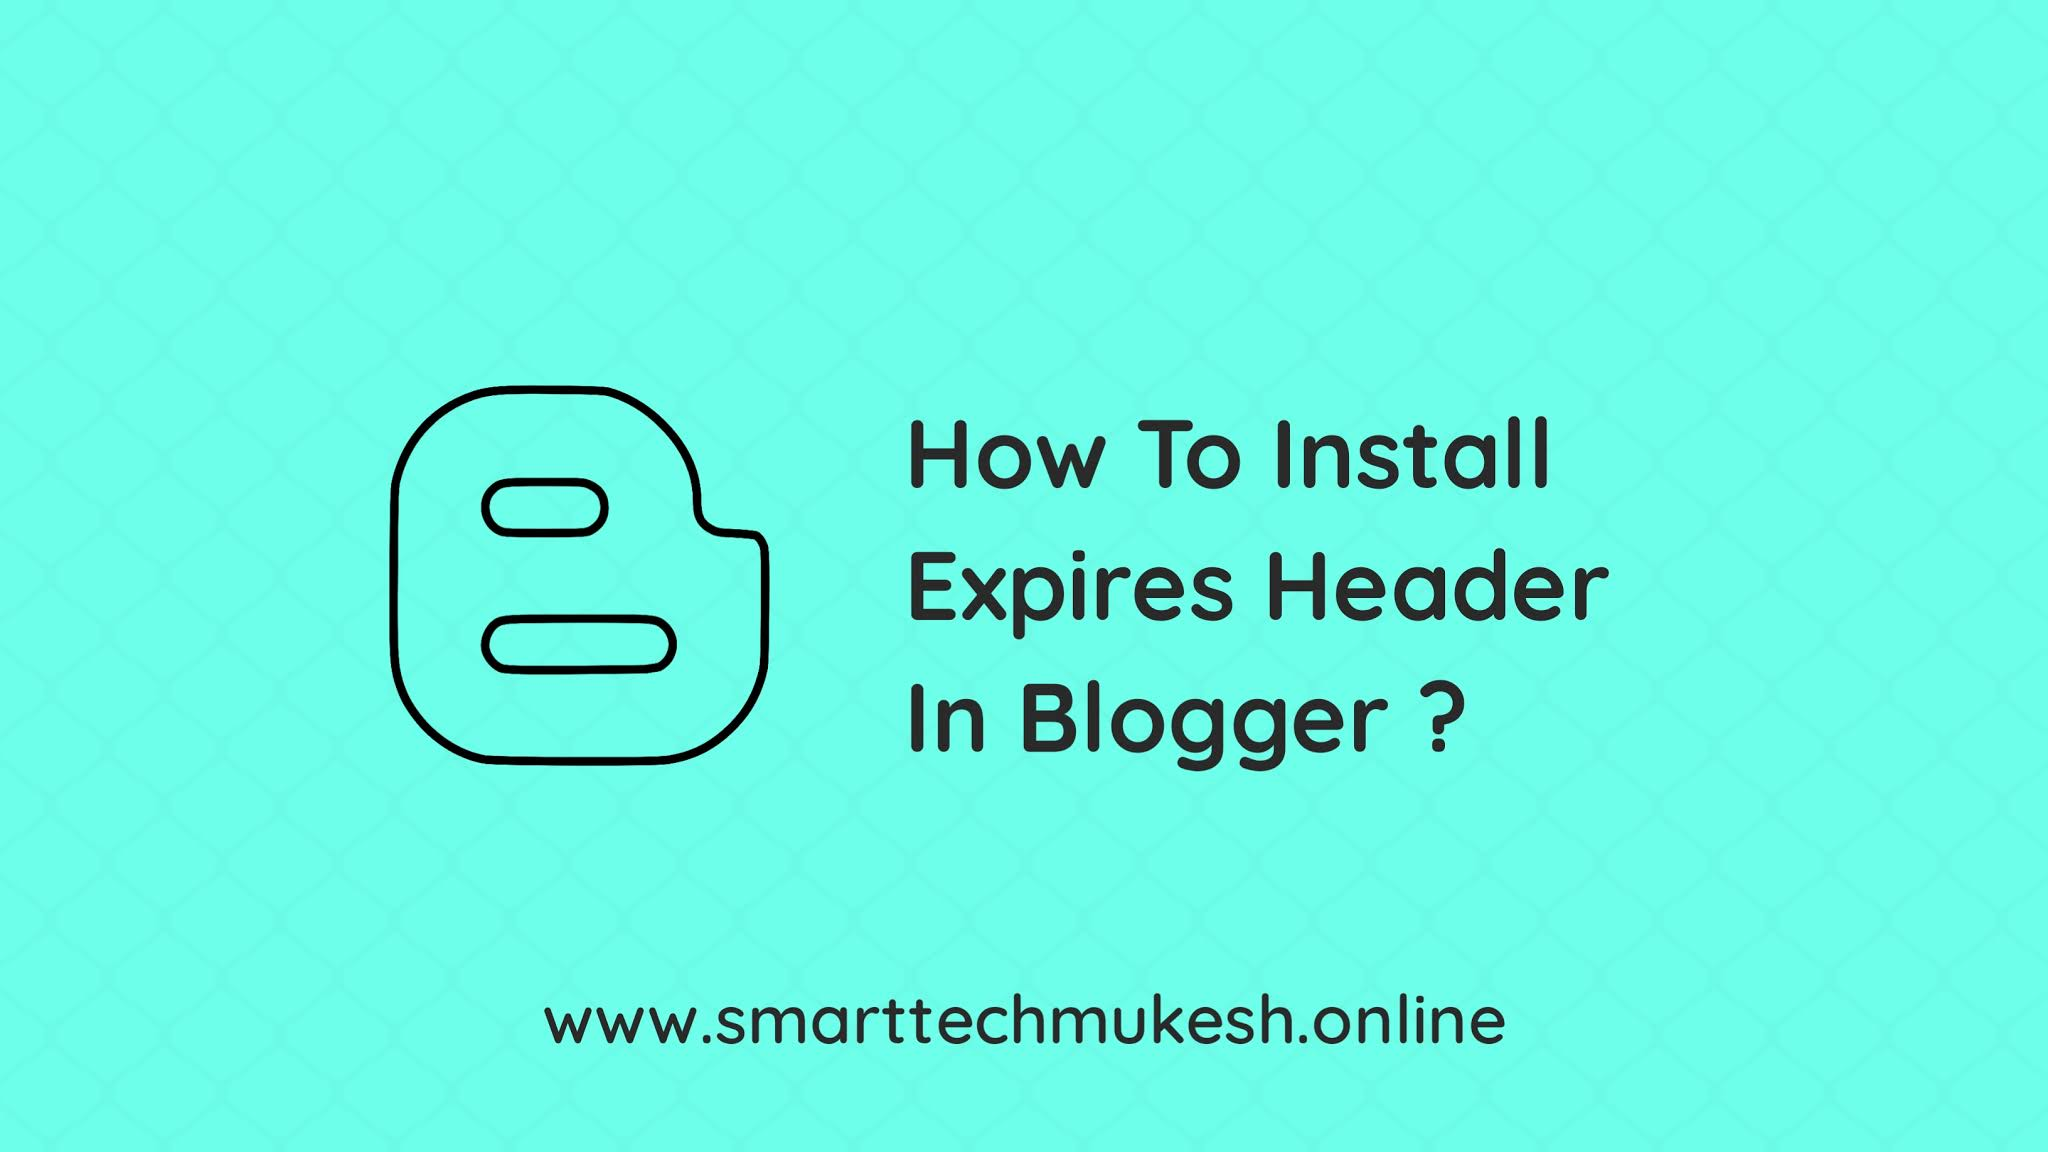 How To Install Expires Header In Blogger ?